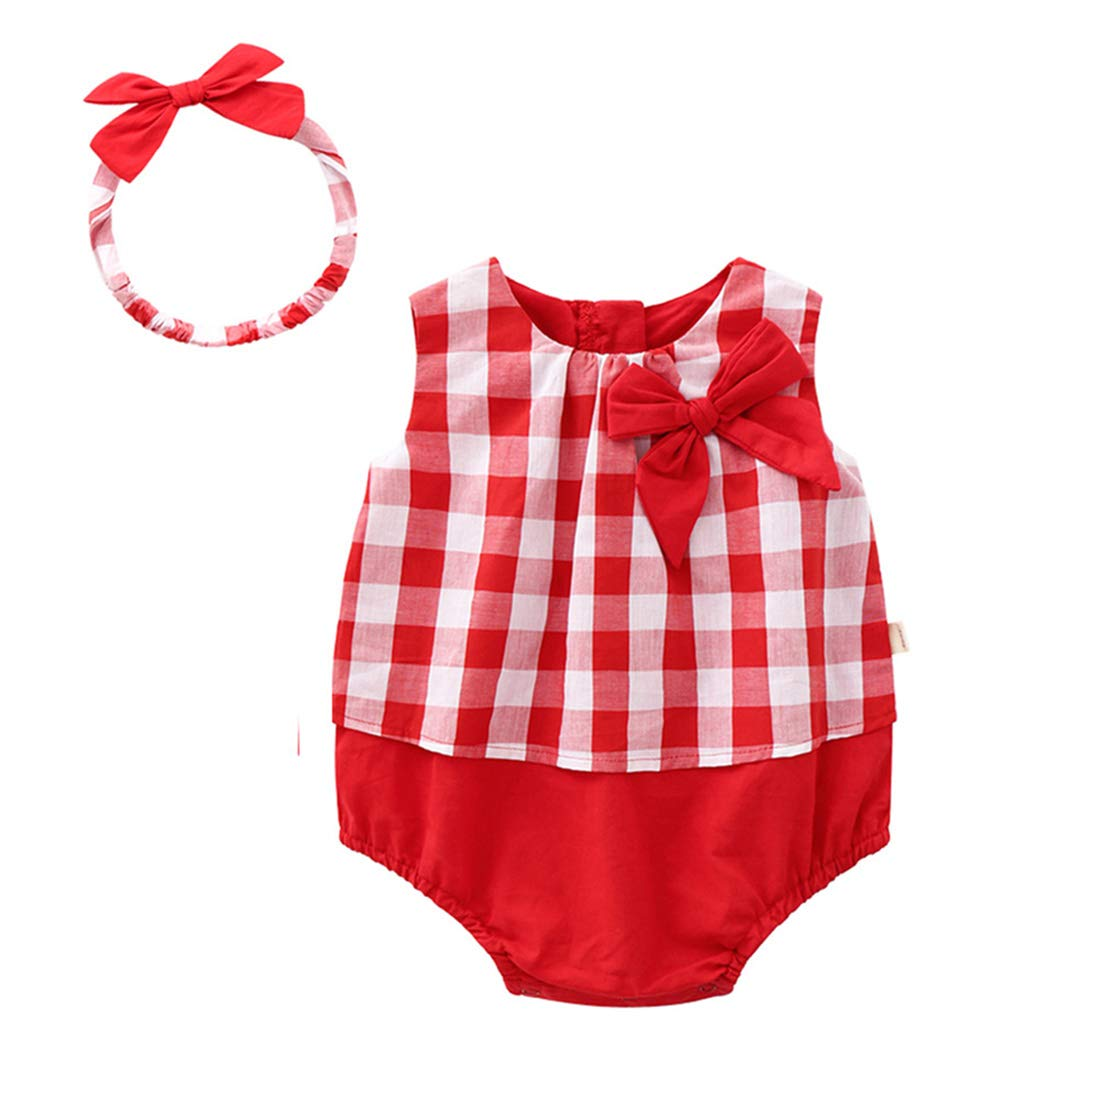 FCQNY Toddler Baby Girls Red Plaid Sleeveless Cotton Romper Jumpsuit with Headband